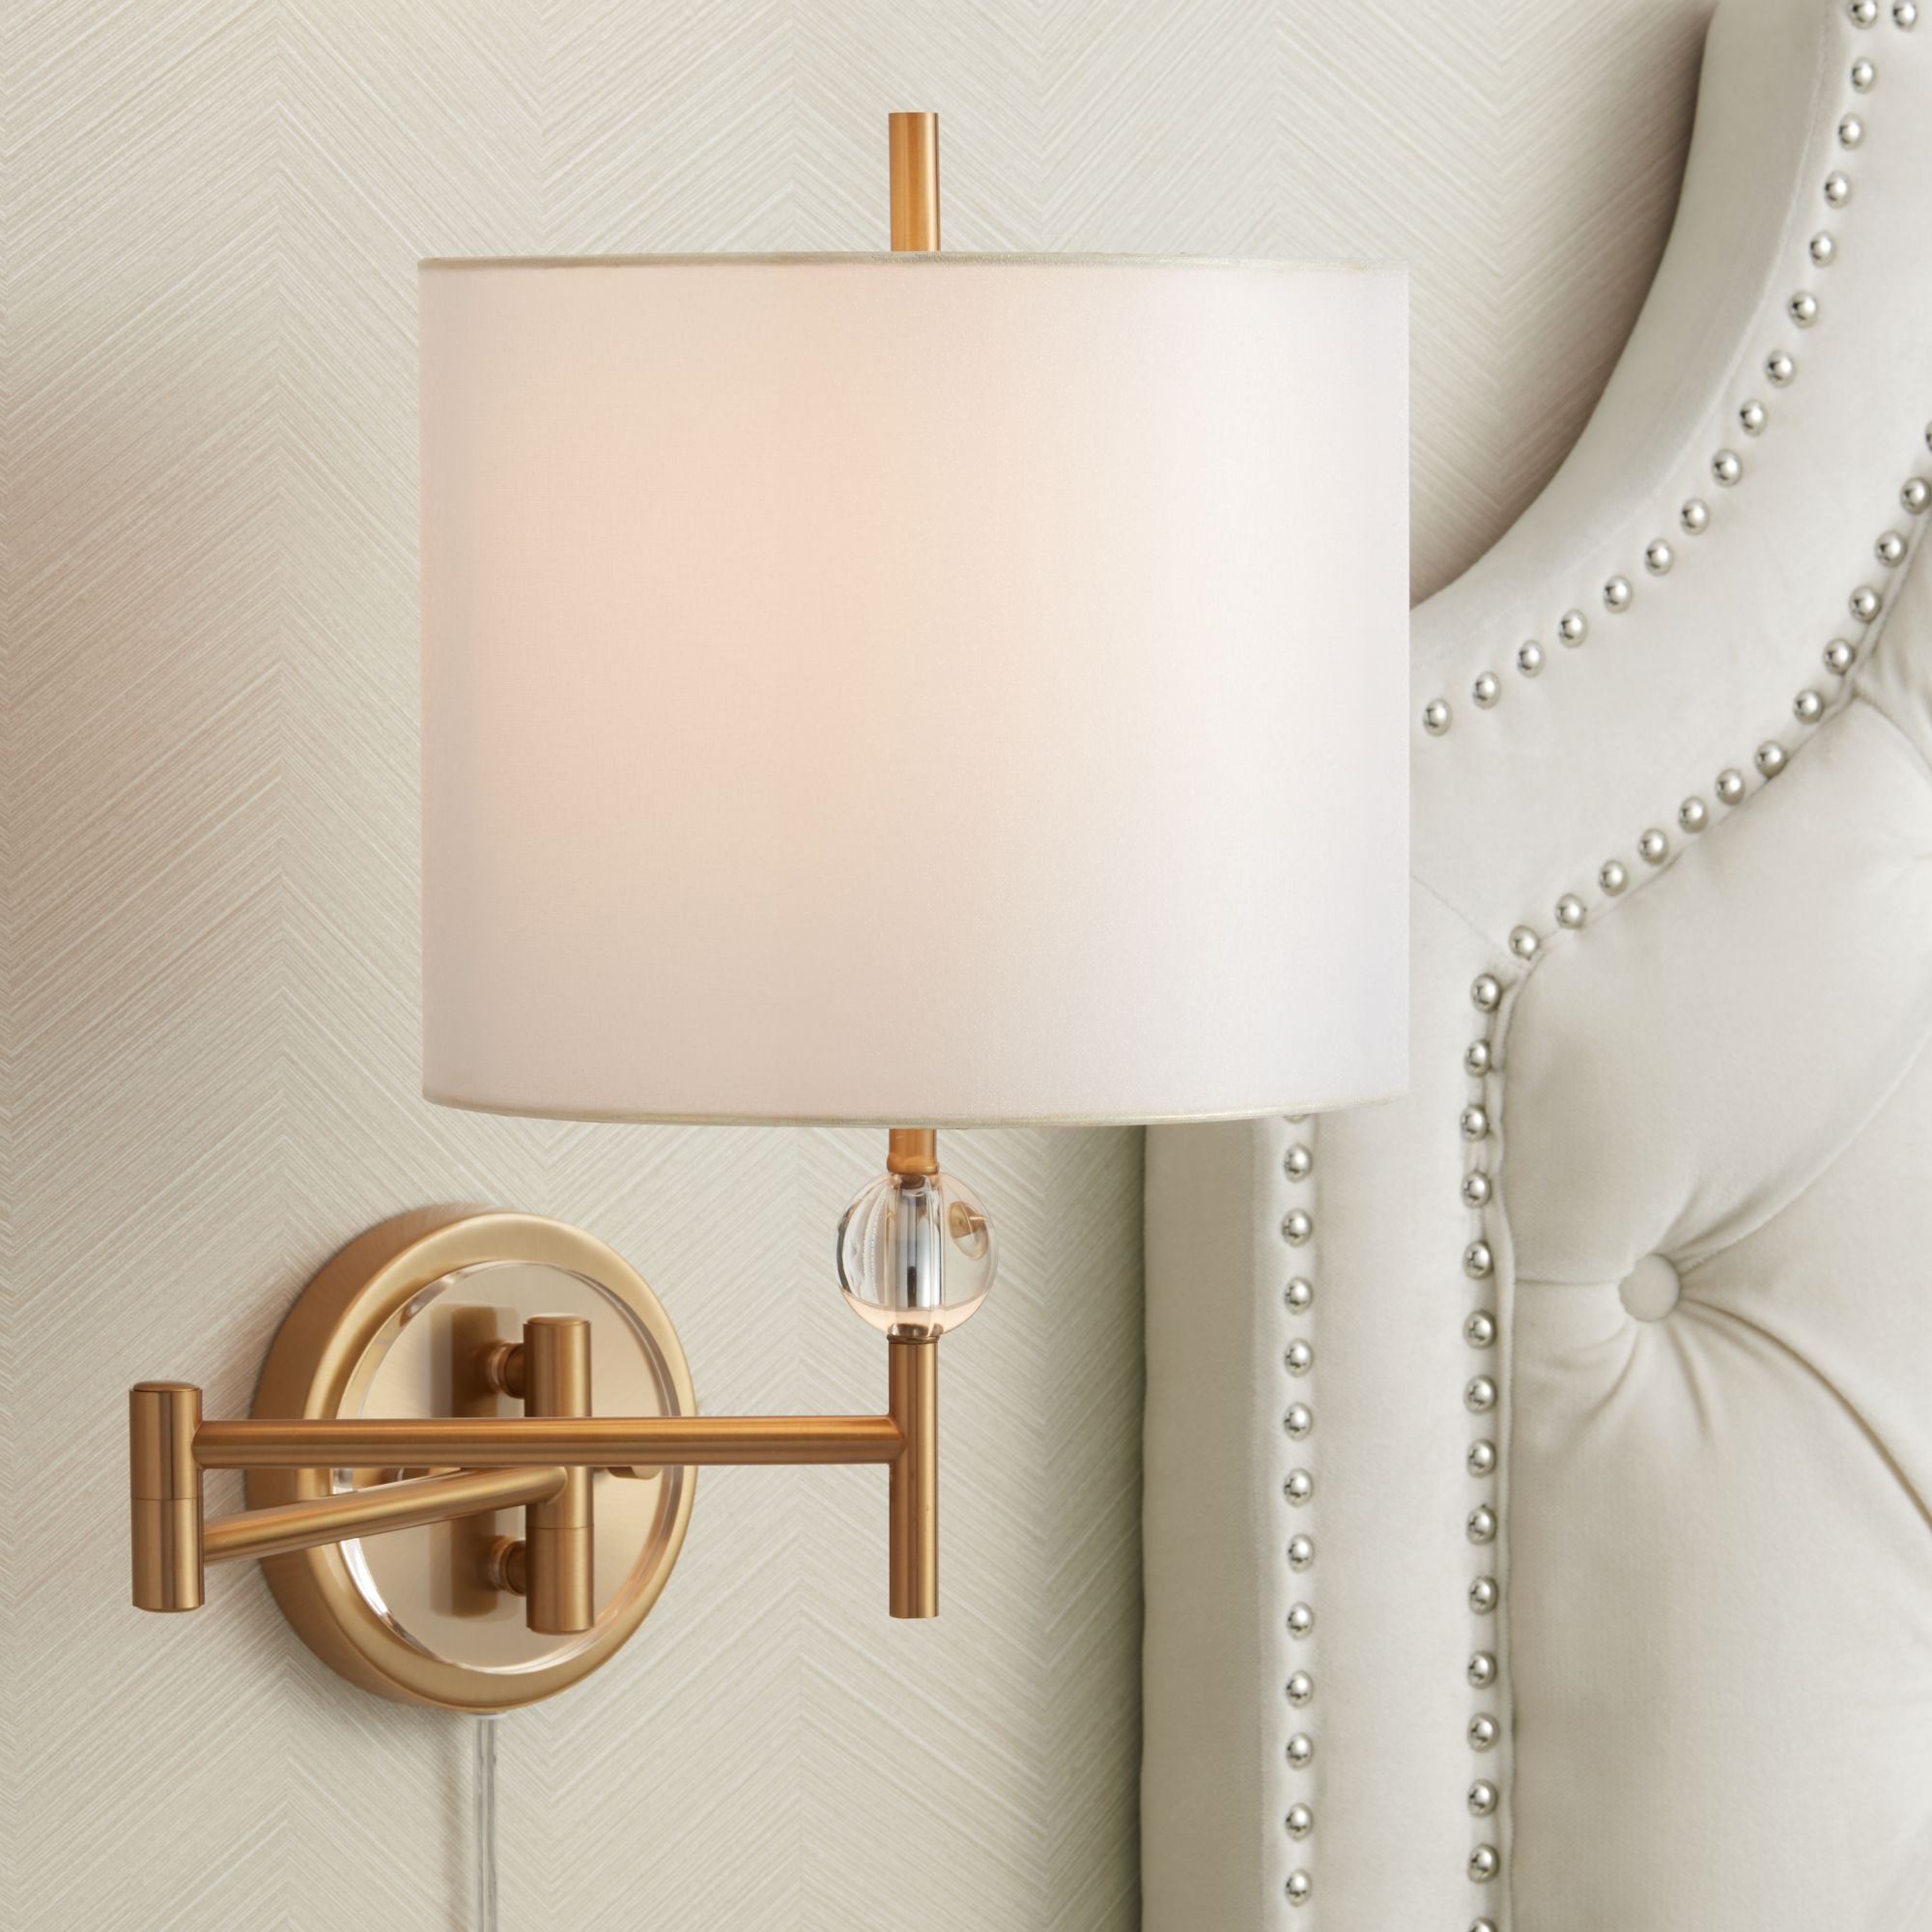 Swing Arm Wall Lamp Polished Br